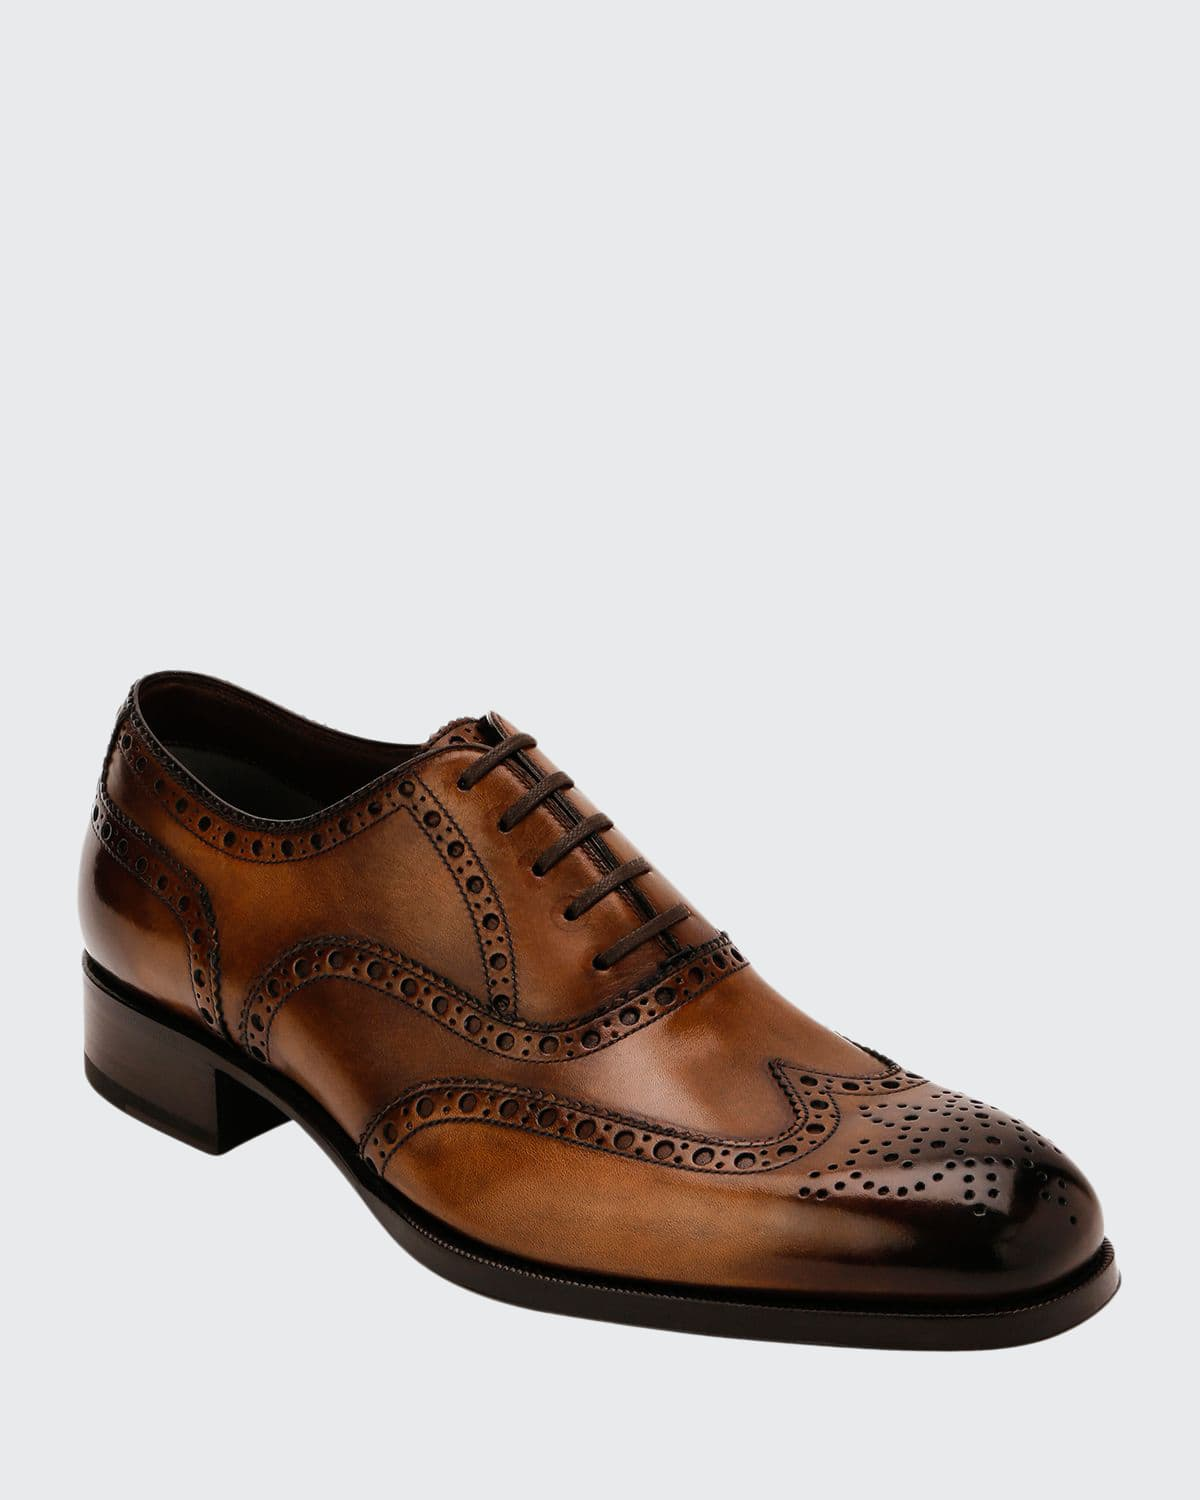 Details about  /New Luxury Leather Shoes Oxford Designer Flat Handmade Breathable Casual Men